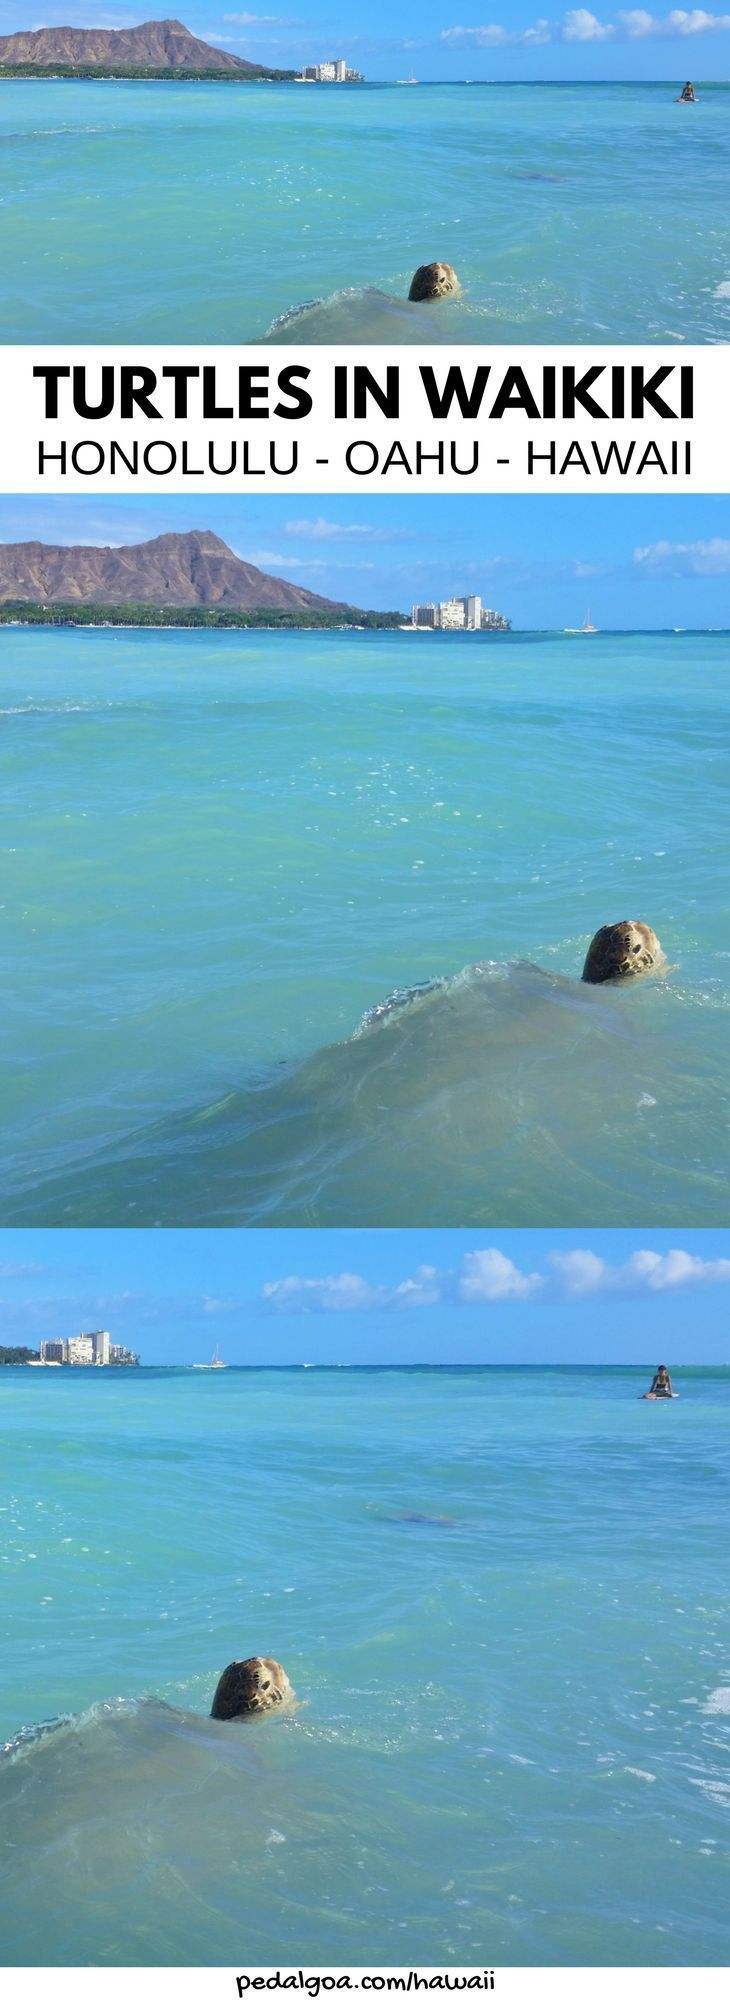 Turtles in Waikiki, Oahu, Hawaii. For where to see turtles on Oahu on Hawaii vacation, try Waikiki Beach near Outrigger Reef Hotel, Sheraton Waikiki, Hilton Hawaiian Village. Or, Turtle Beach aka Laniakea Beach on North Shore is one of the best Oahu beaches for turtles, and it has nearby swimming, snorkeling, hikes, waterfalls. Bucket list of things to do on Oahu. Honolulu or Waikiki drive! USA travel destinations for world adventures on a budget... #hawaii #oahu #TravelDestinationsUsaBudget